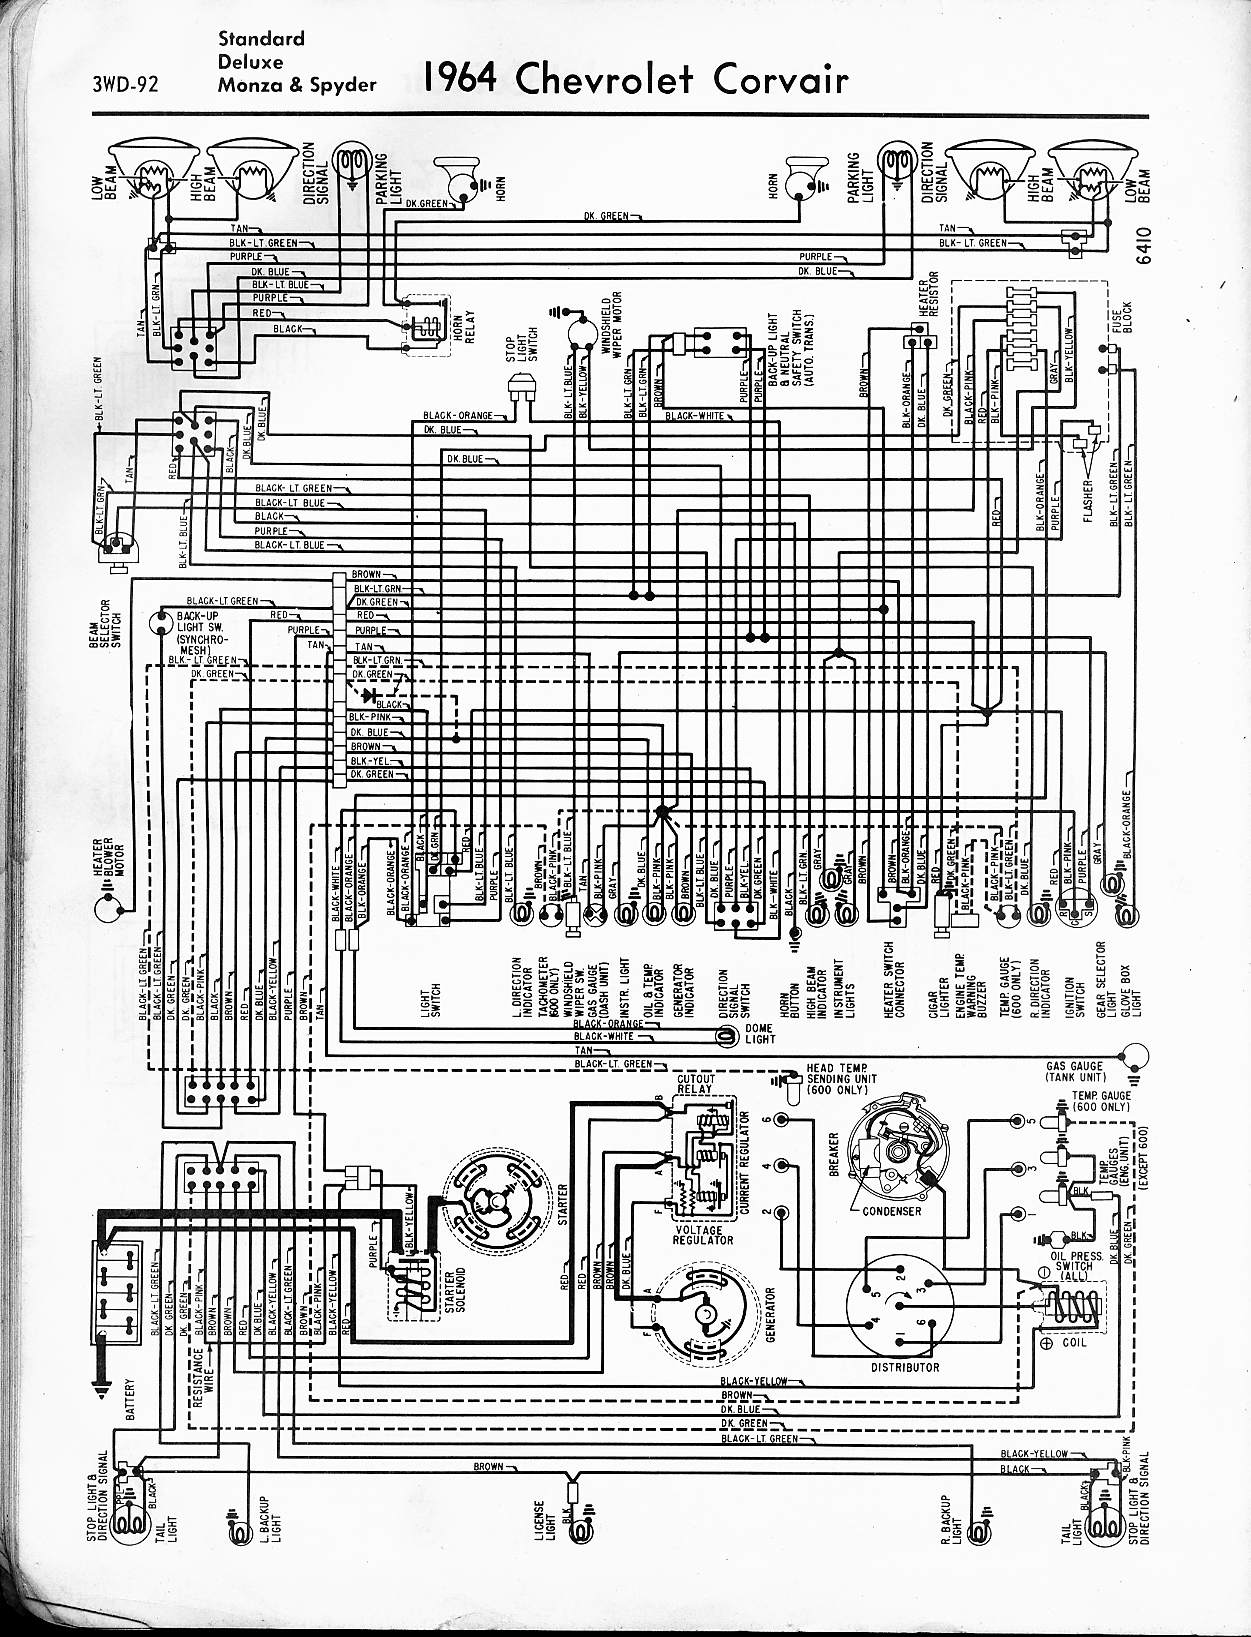 temp wiring diagram 65 chevelle simple wiring diagram site 1970 chevelle alternator wiring diagram 70 impala wiring diagram wiring library 64 chevelle wiring diagram temp wiring diagram 65 chevelle